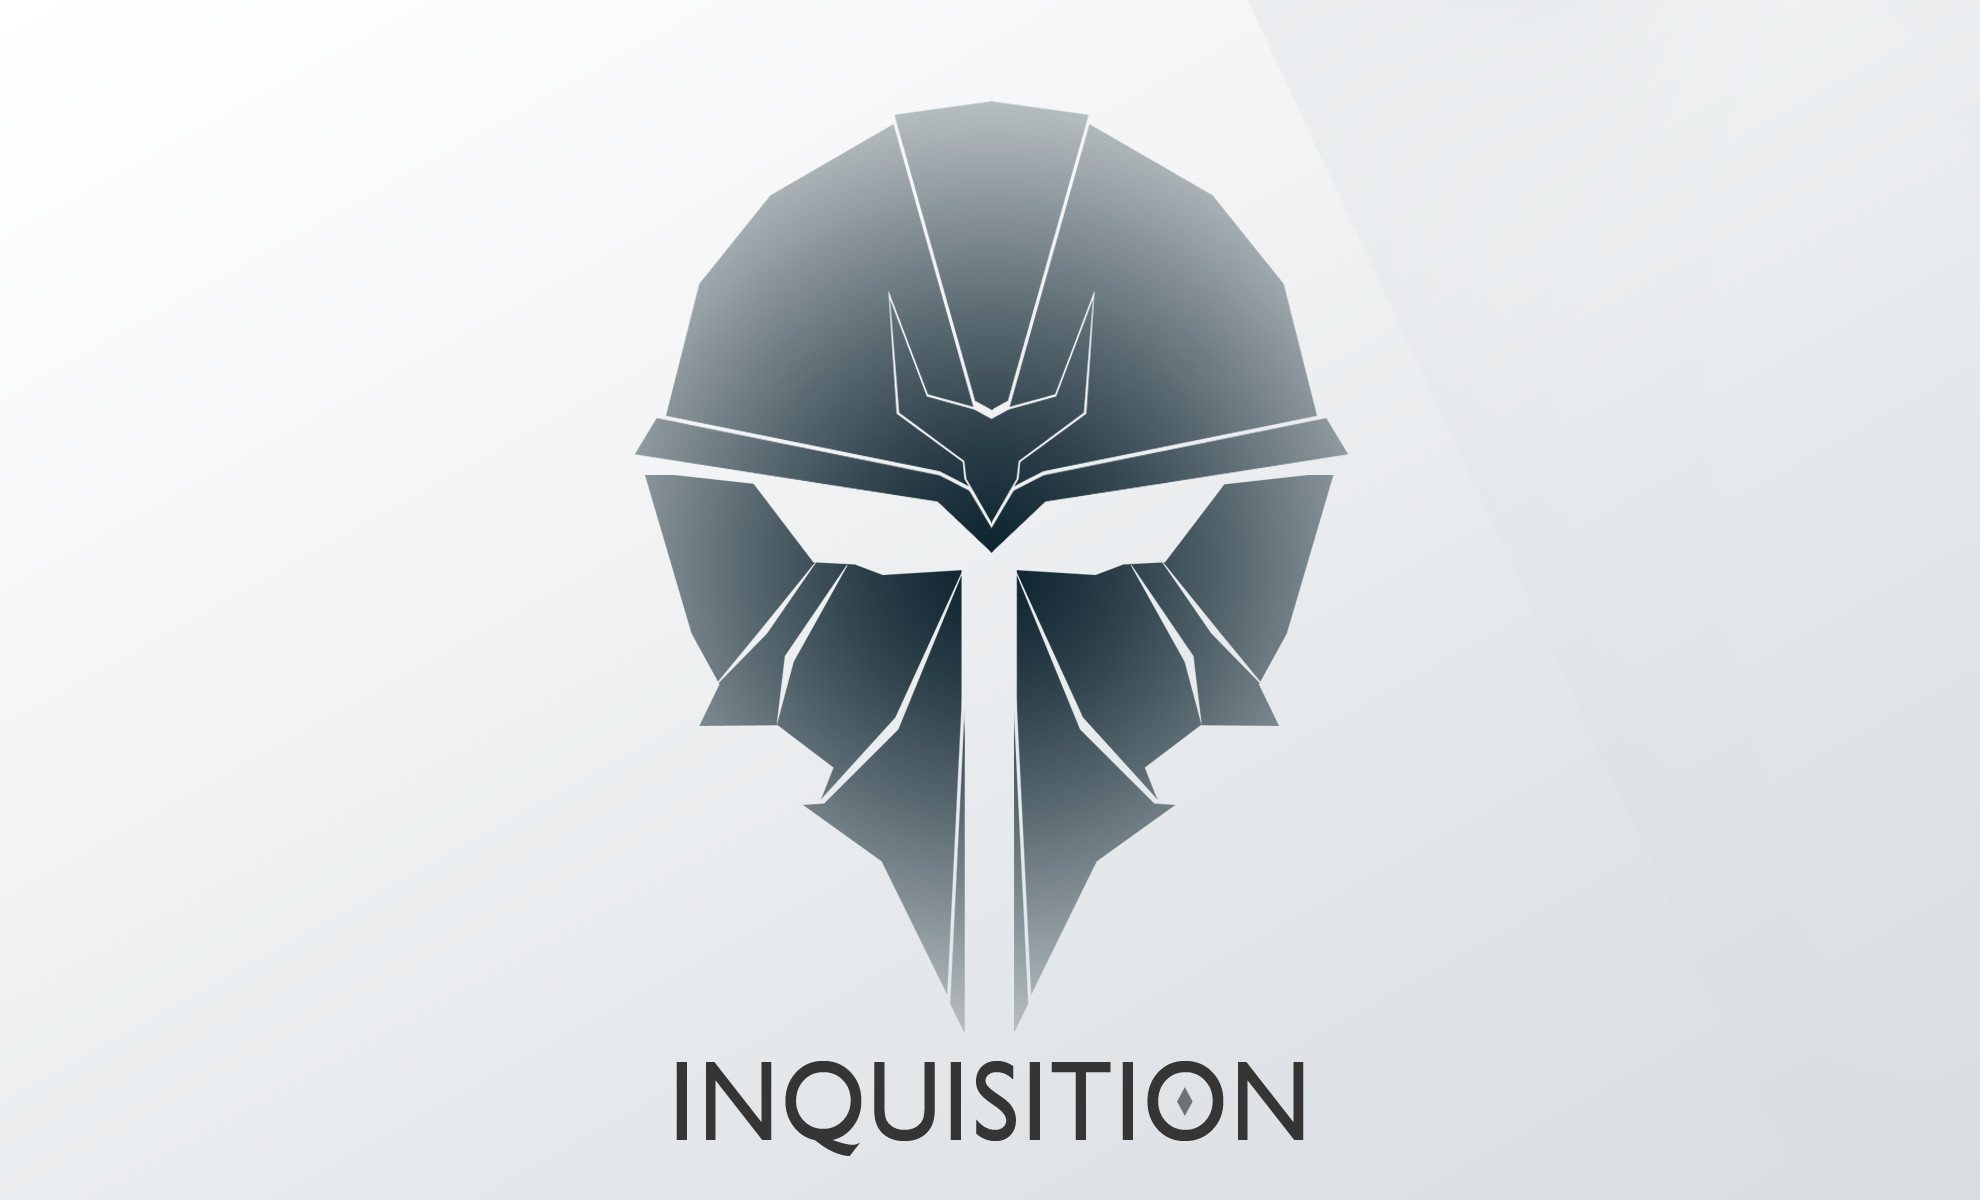 Dragon Age Inquisition Faction Wallpaper by Pateytos Dragon Age Inquisition  Faction Wallpaper by Pateytos